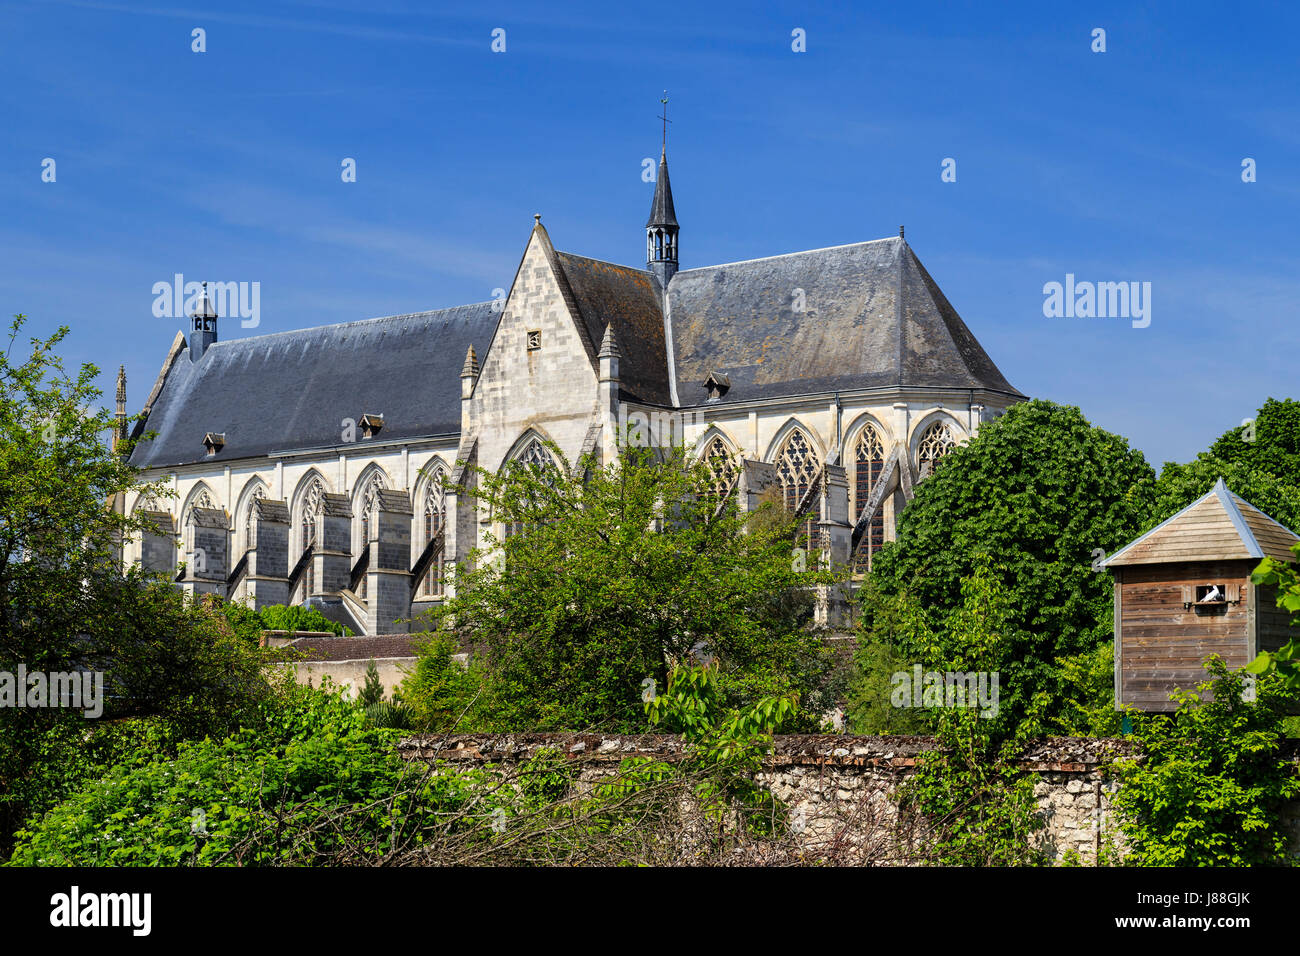 France, Loiret, Clery-Saint-Andre, the Basilica of Our Lady of Clery - Stock Image